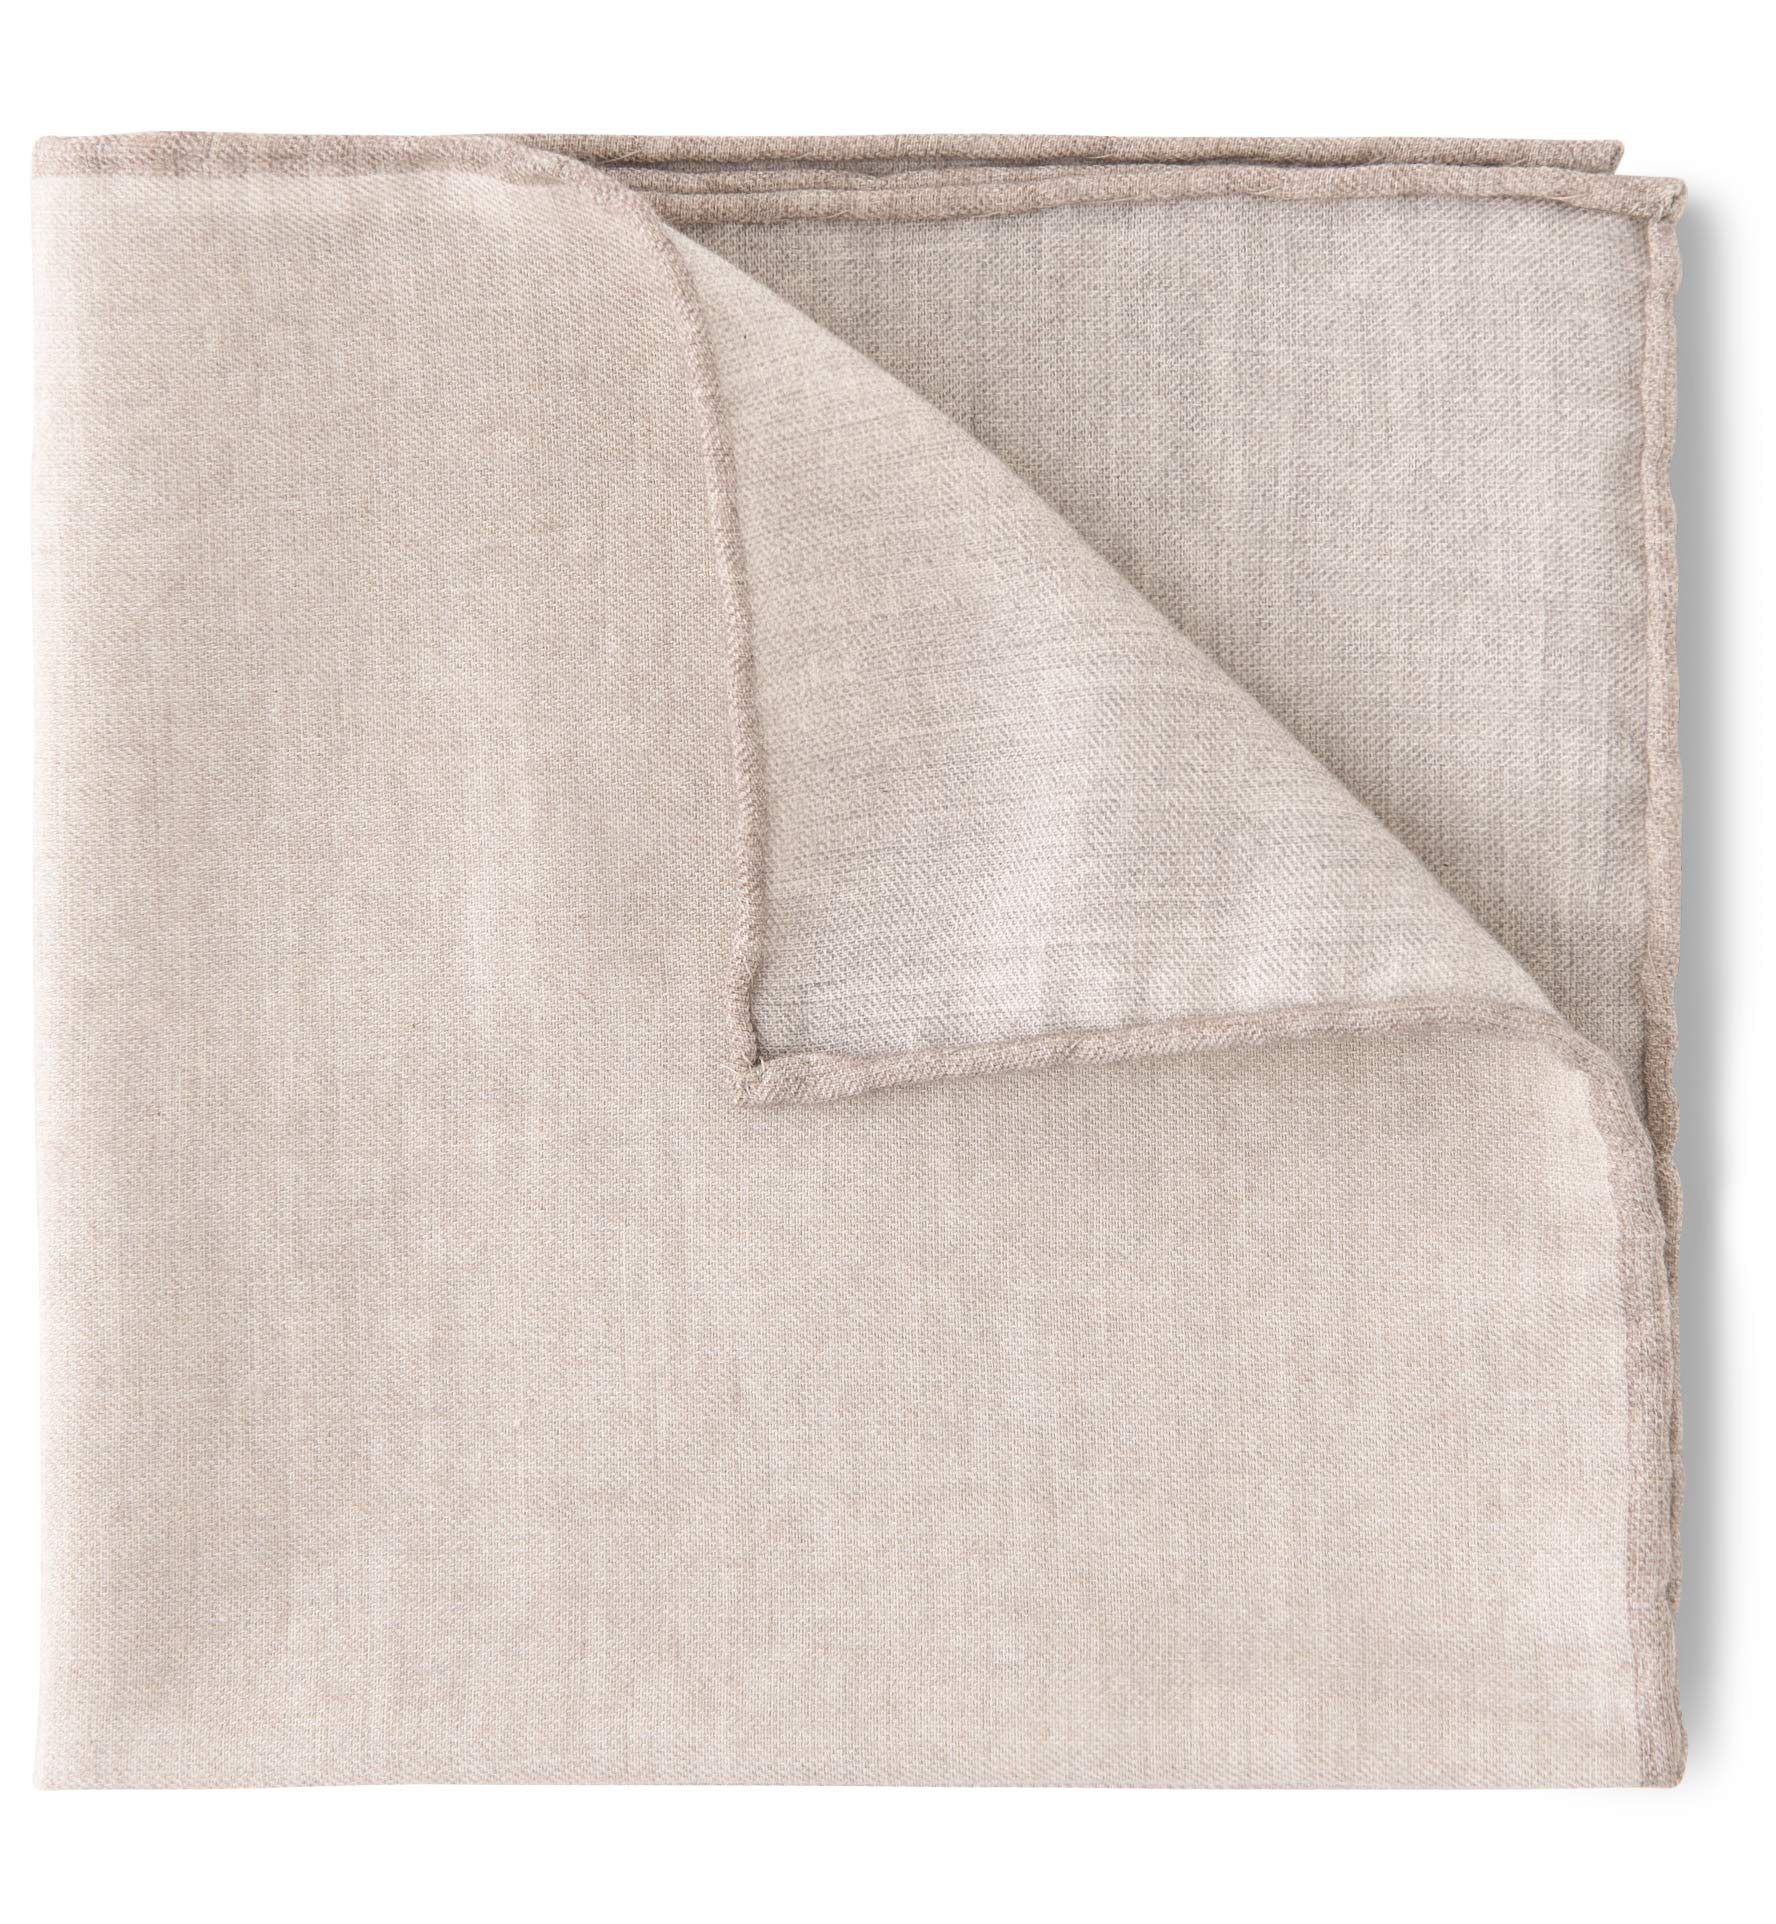 Zoom Image of Natural and Camel Cotton and Wool Pocket Square